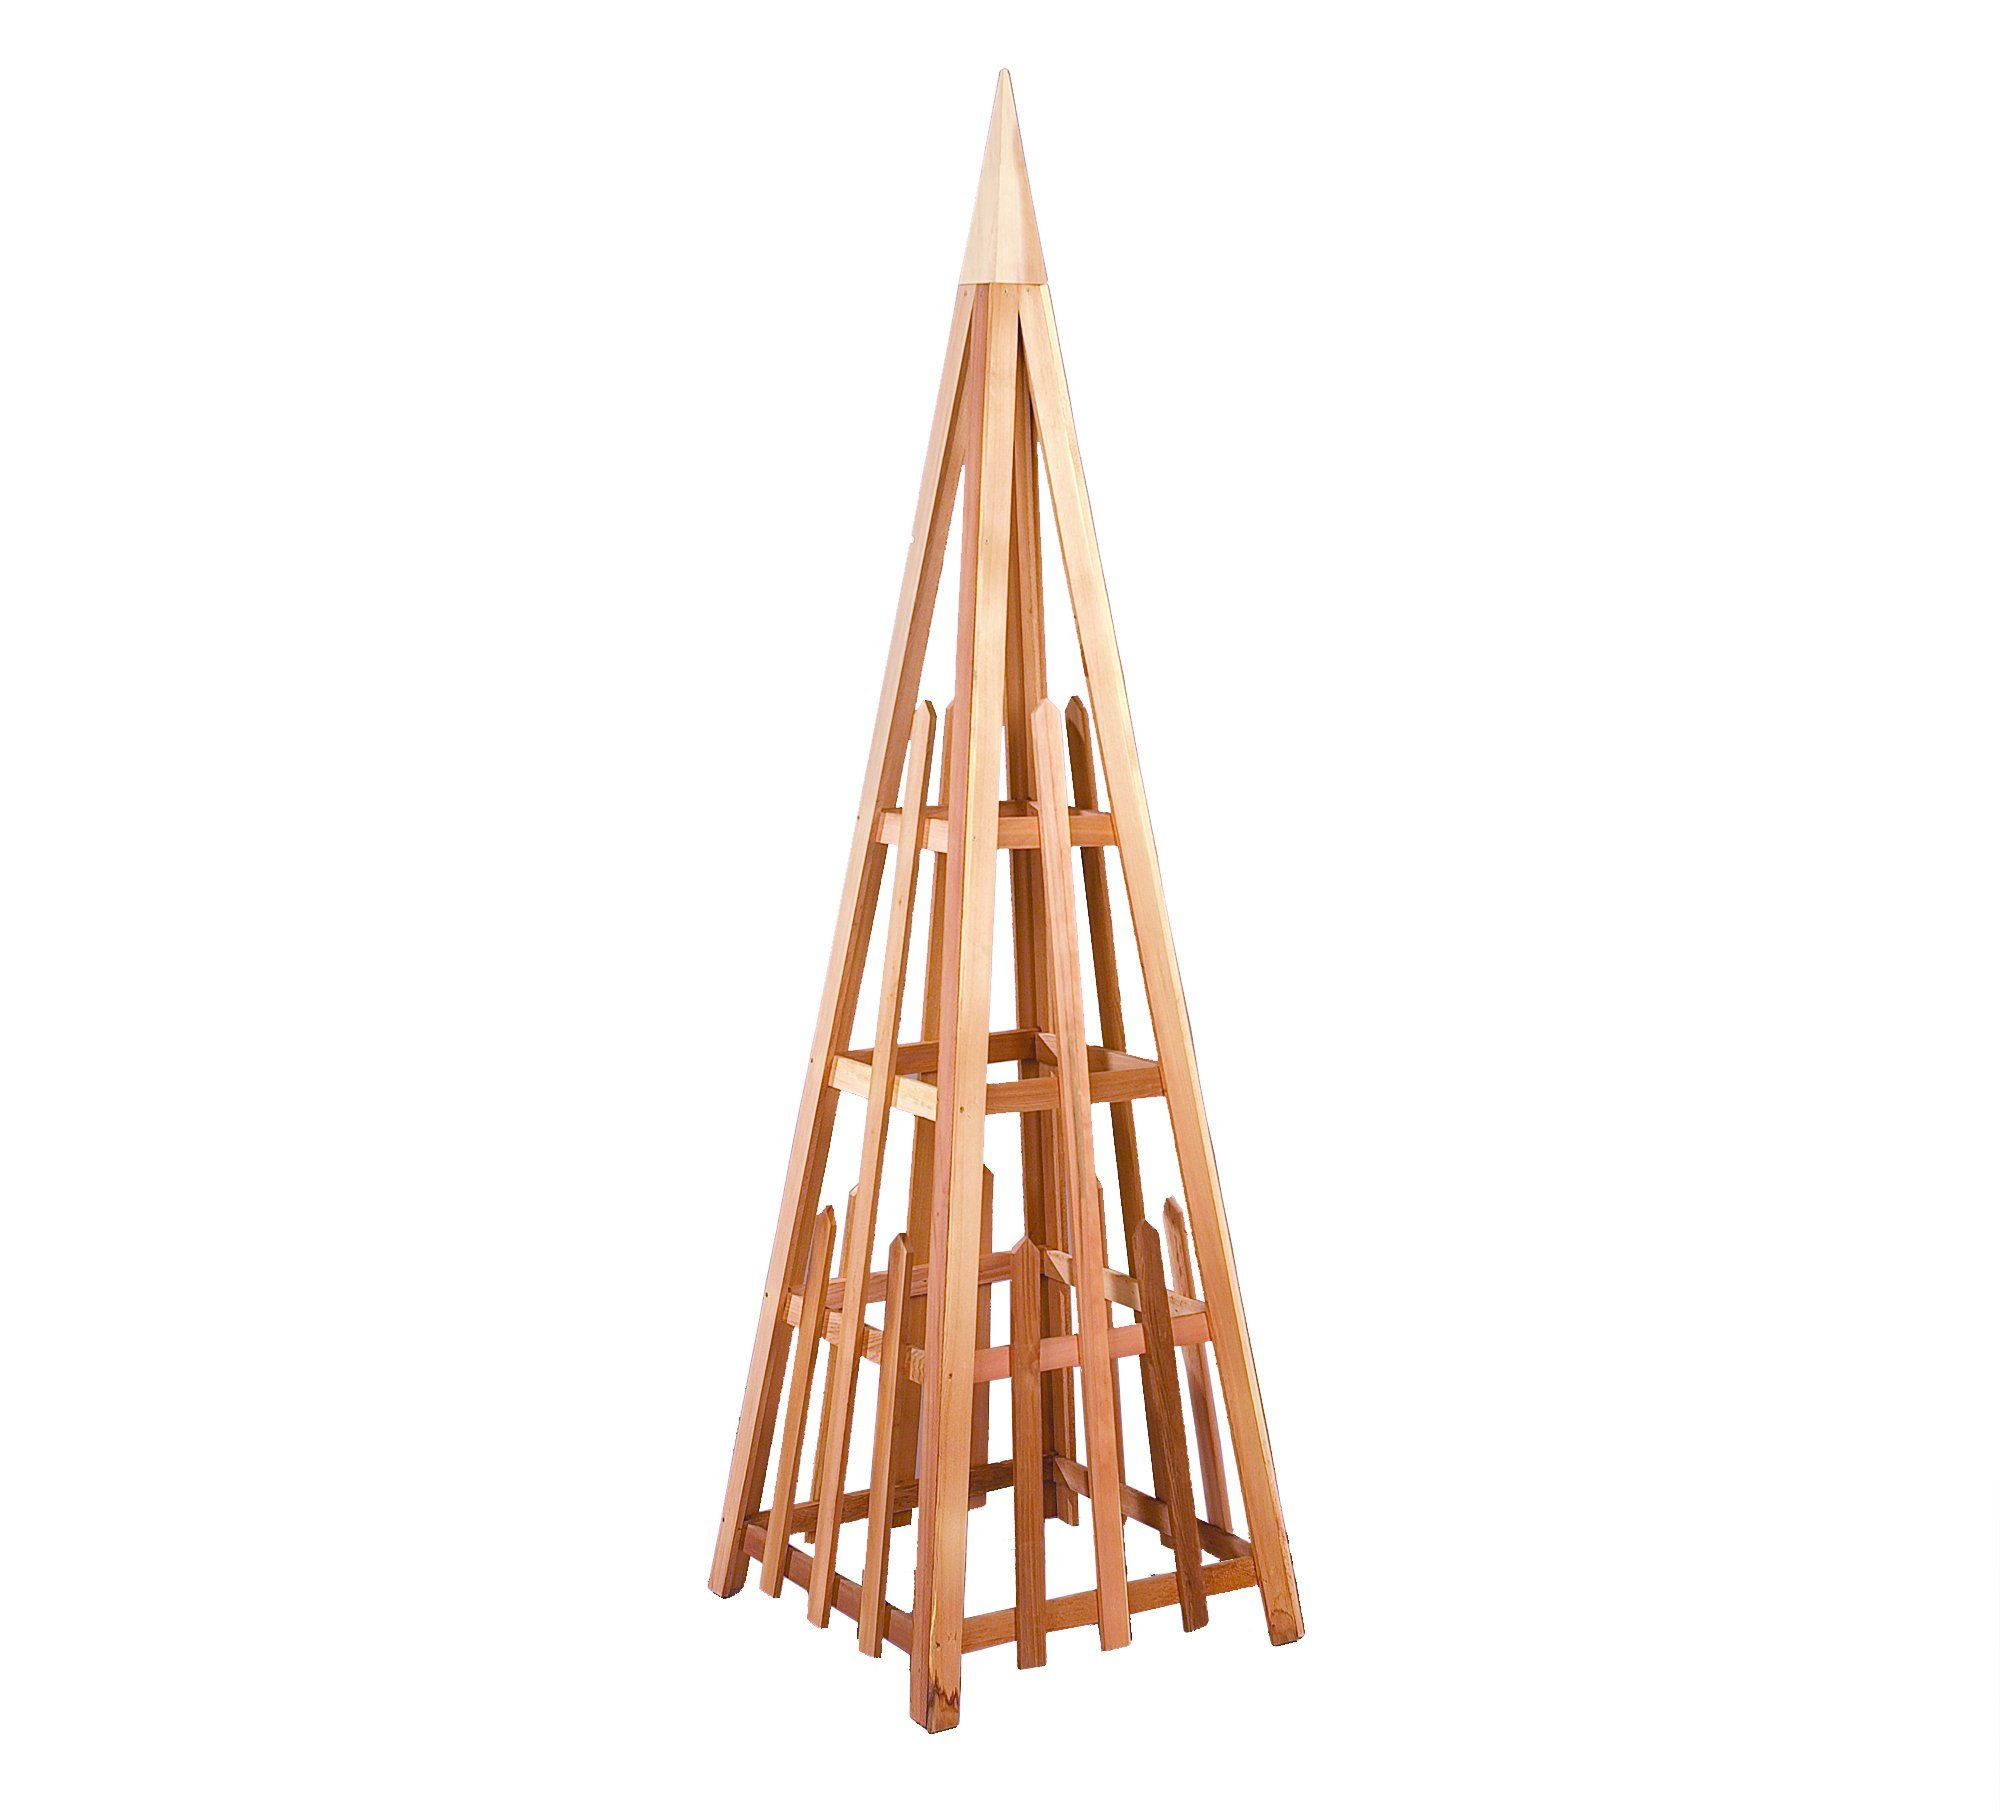 Cedarlooks 0601310 Pyramid Trellis